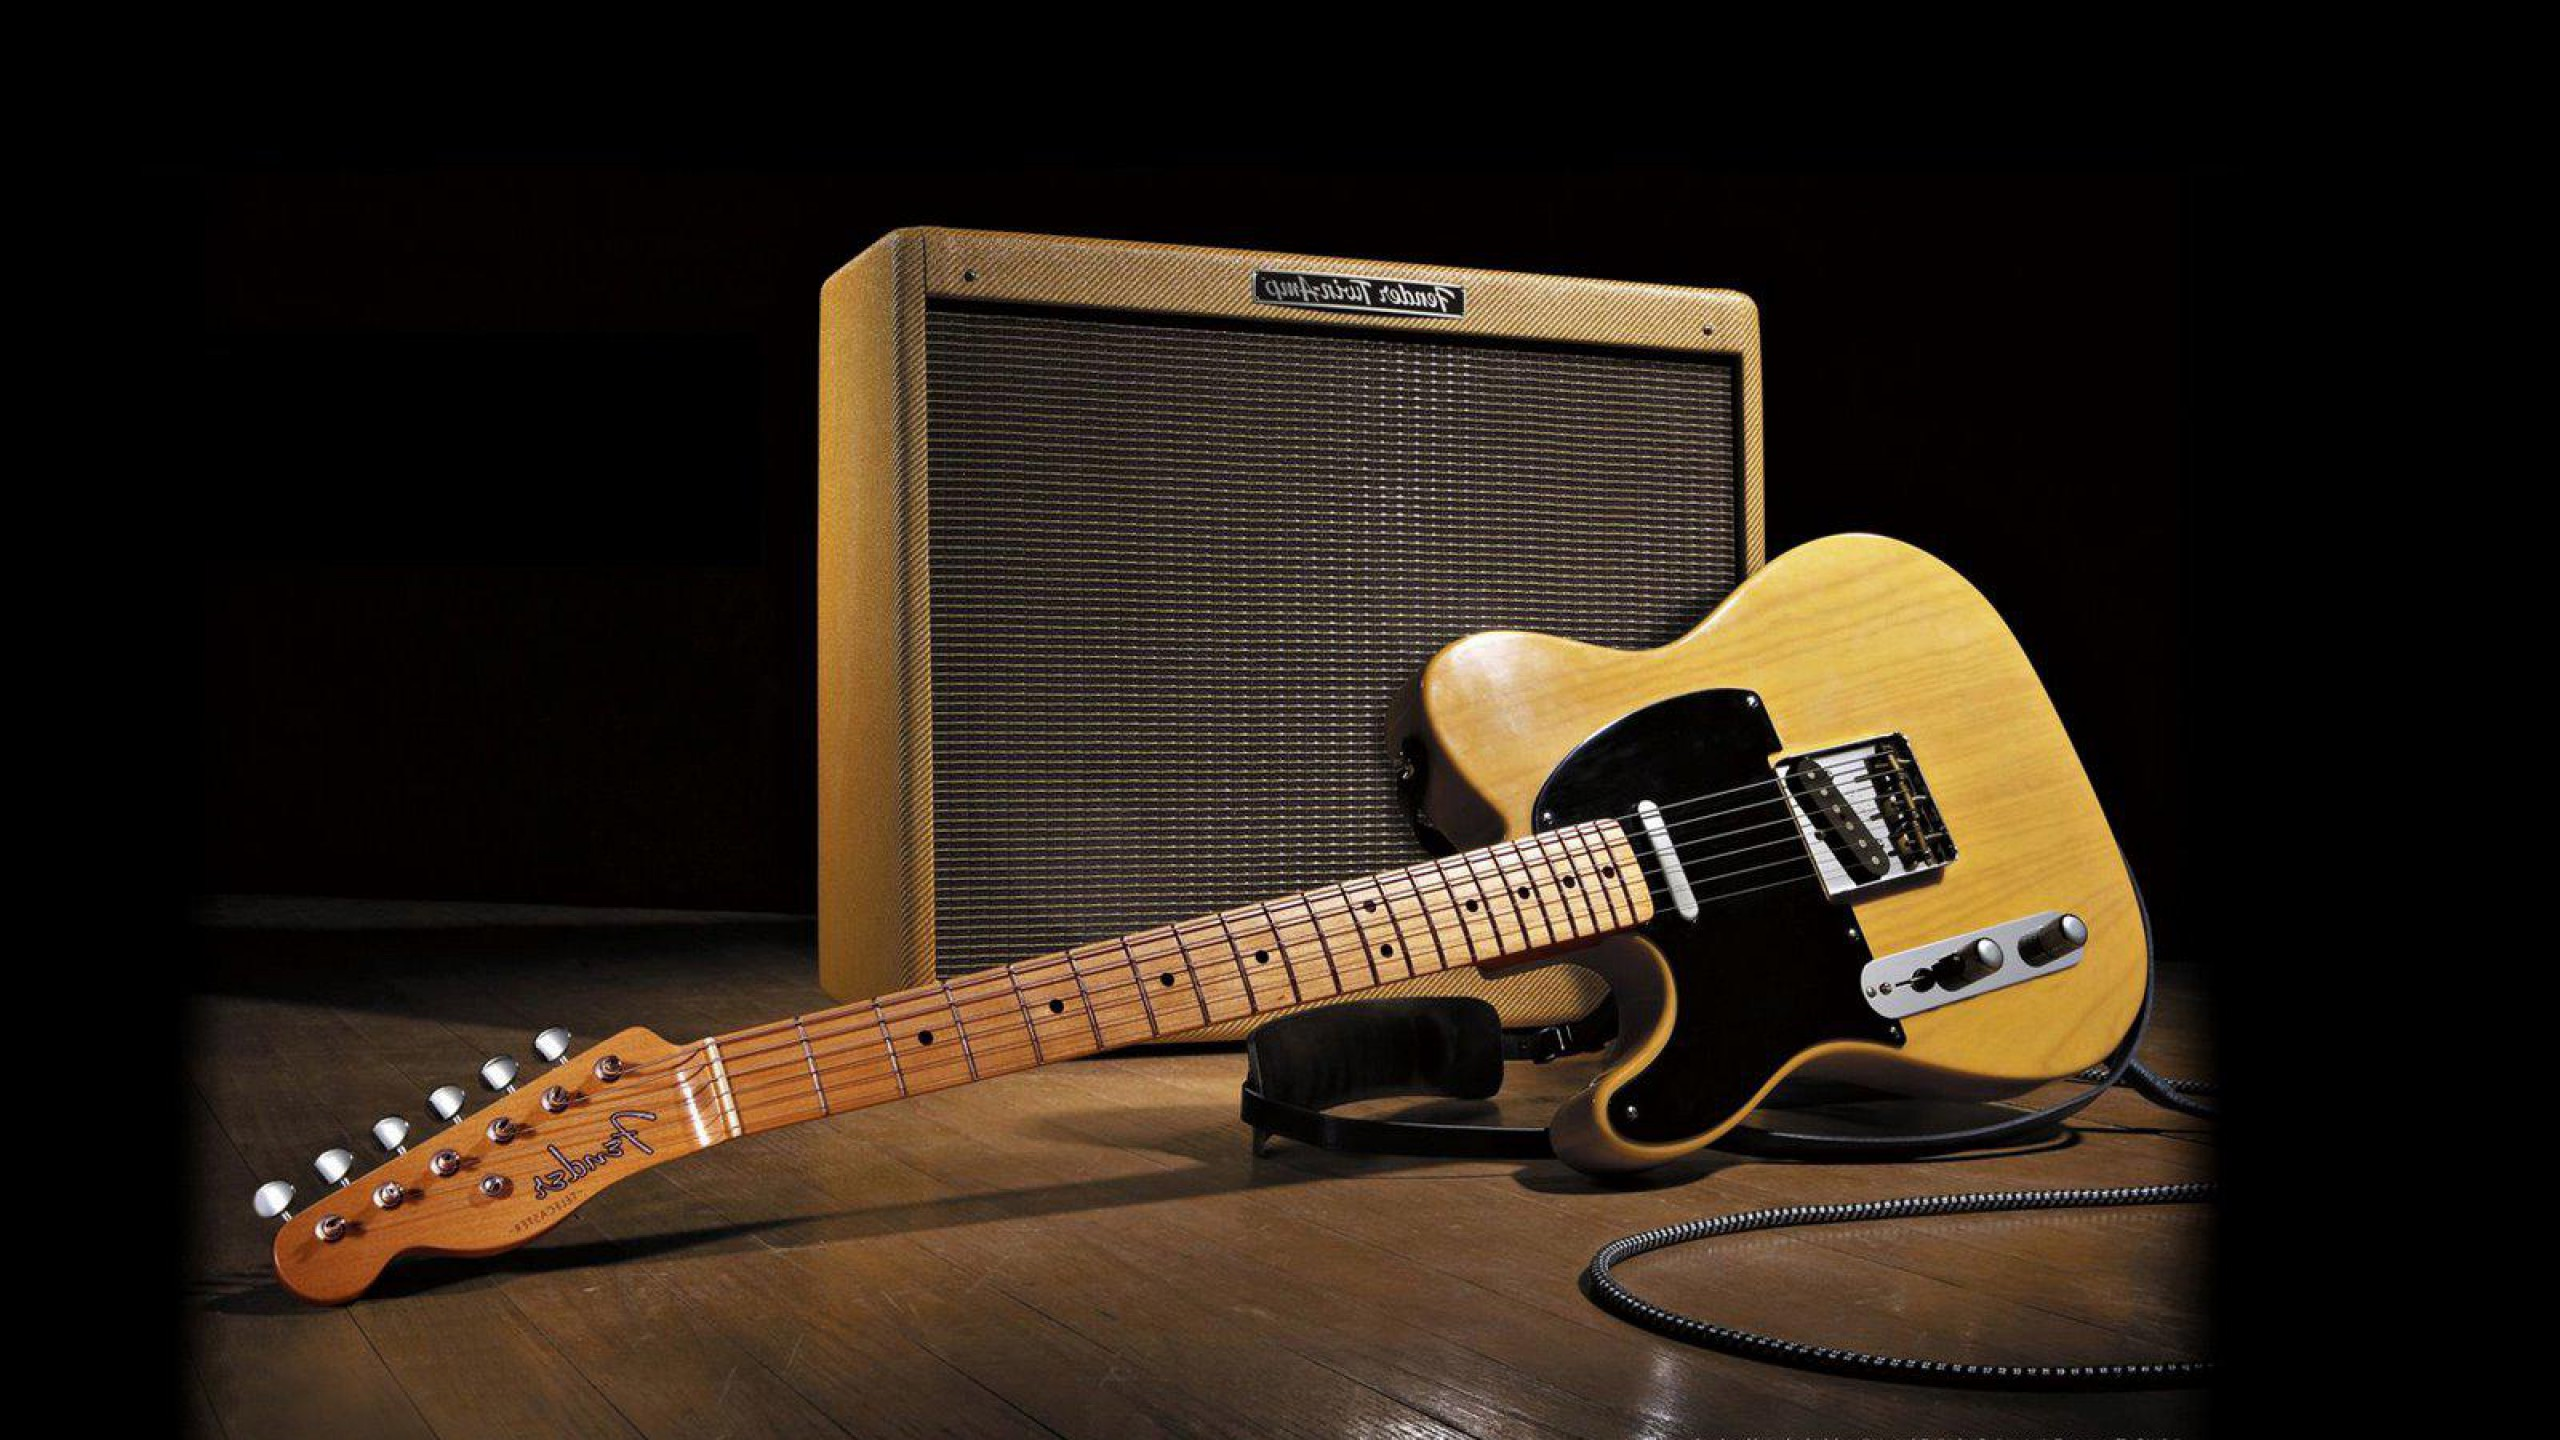 Musical Instruments Wallpapers Free Download